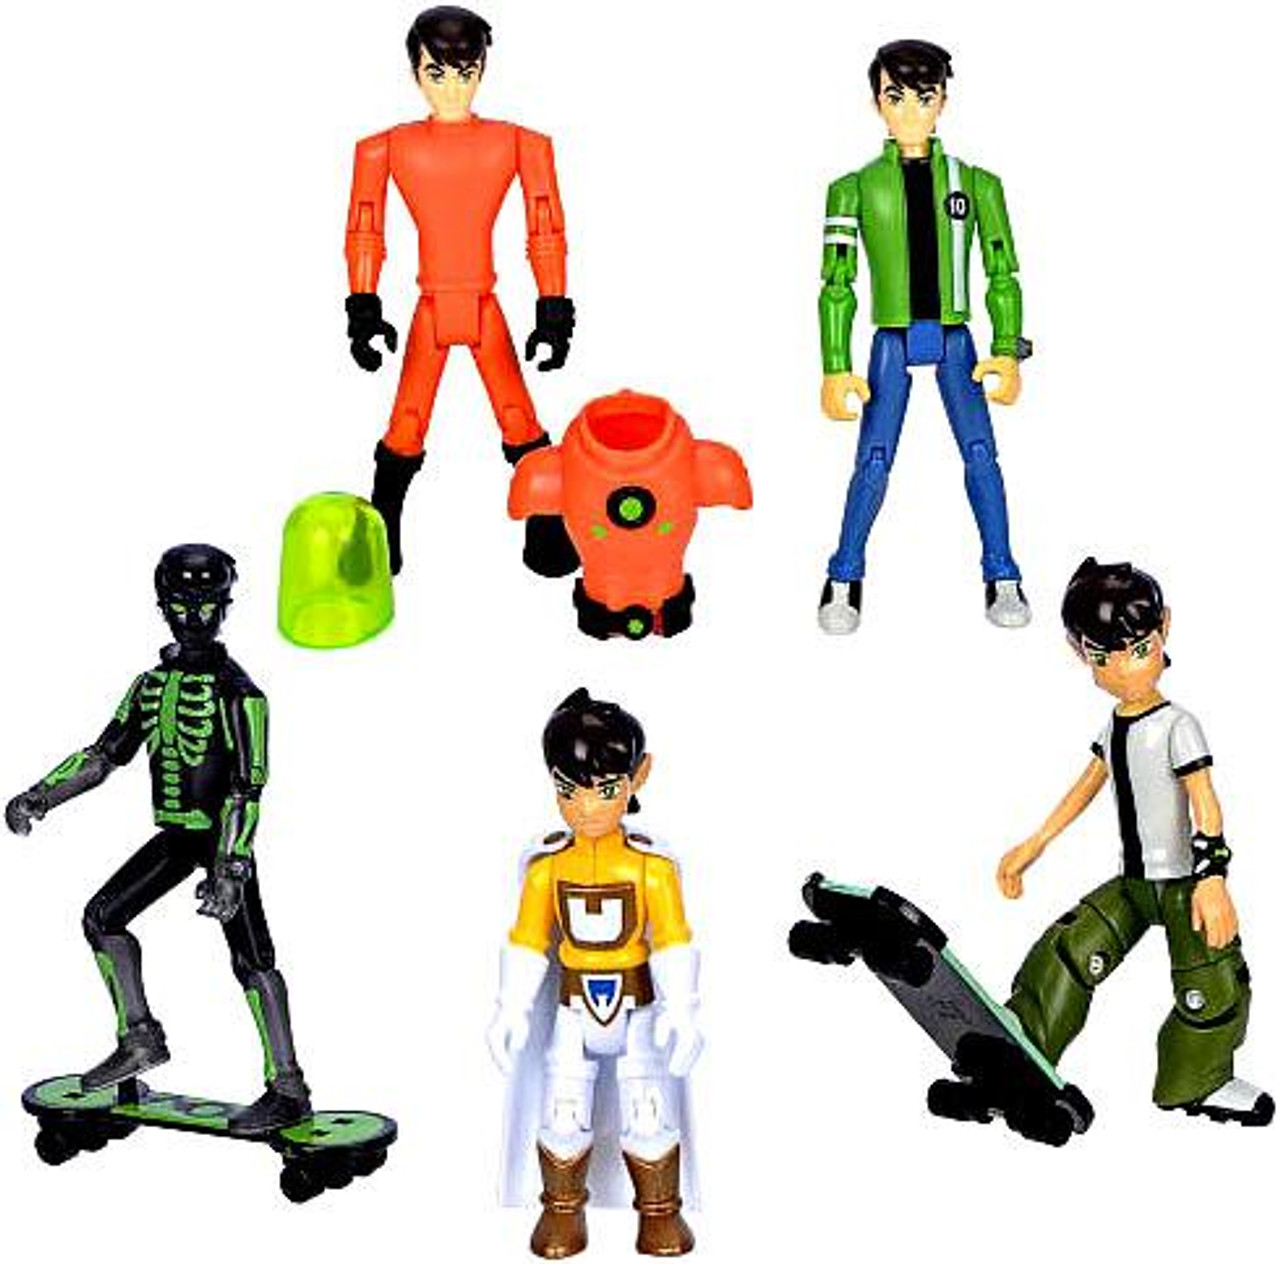 Ben 10 Ben Tennyson Exclusive Action Figure 5-Pack #1